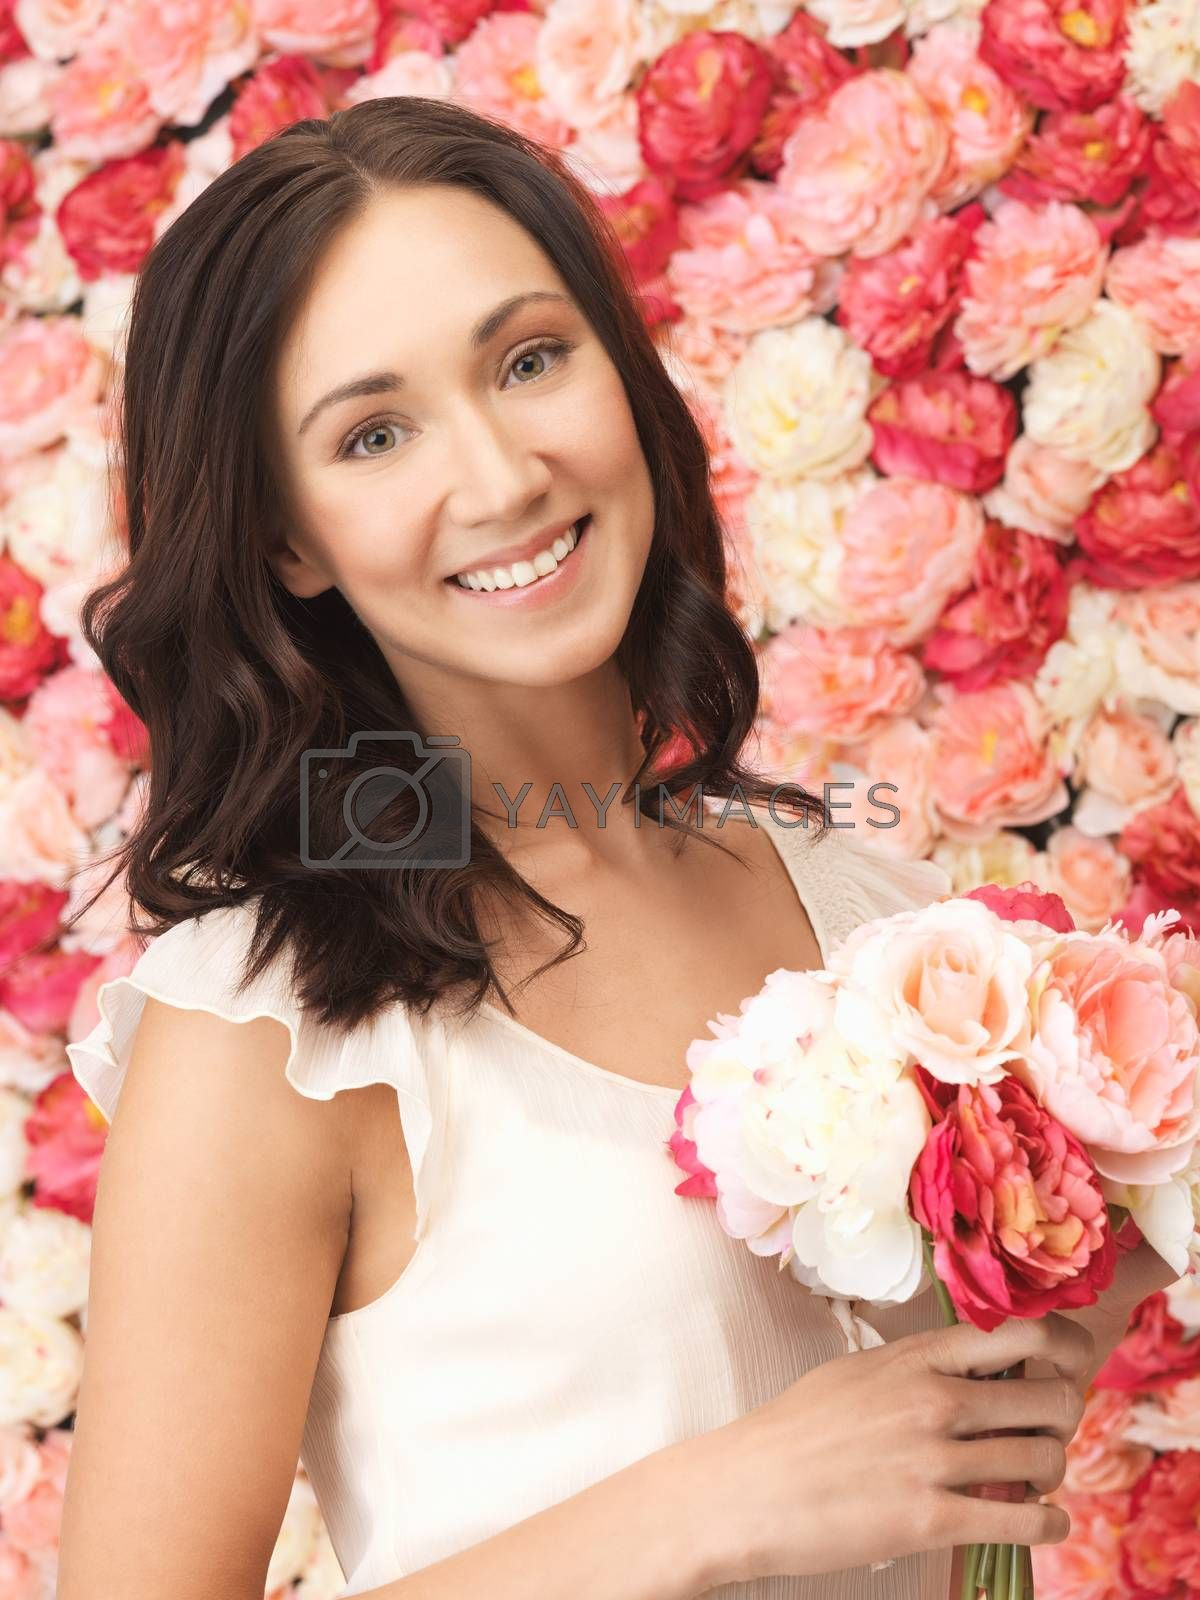 woman with background full of roses by dolgachov